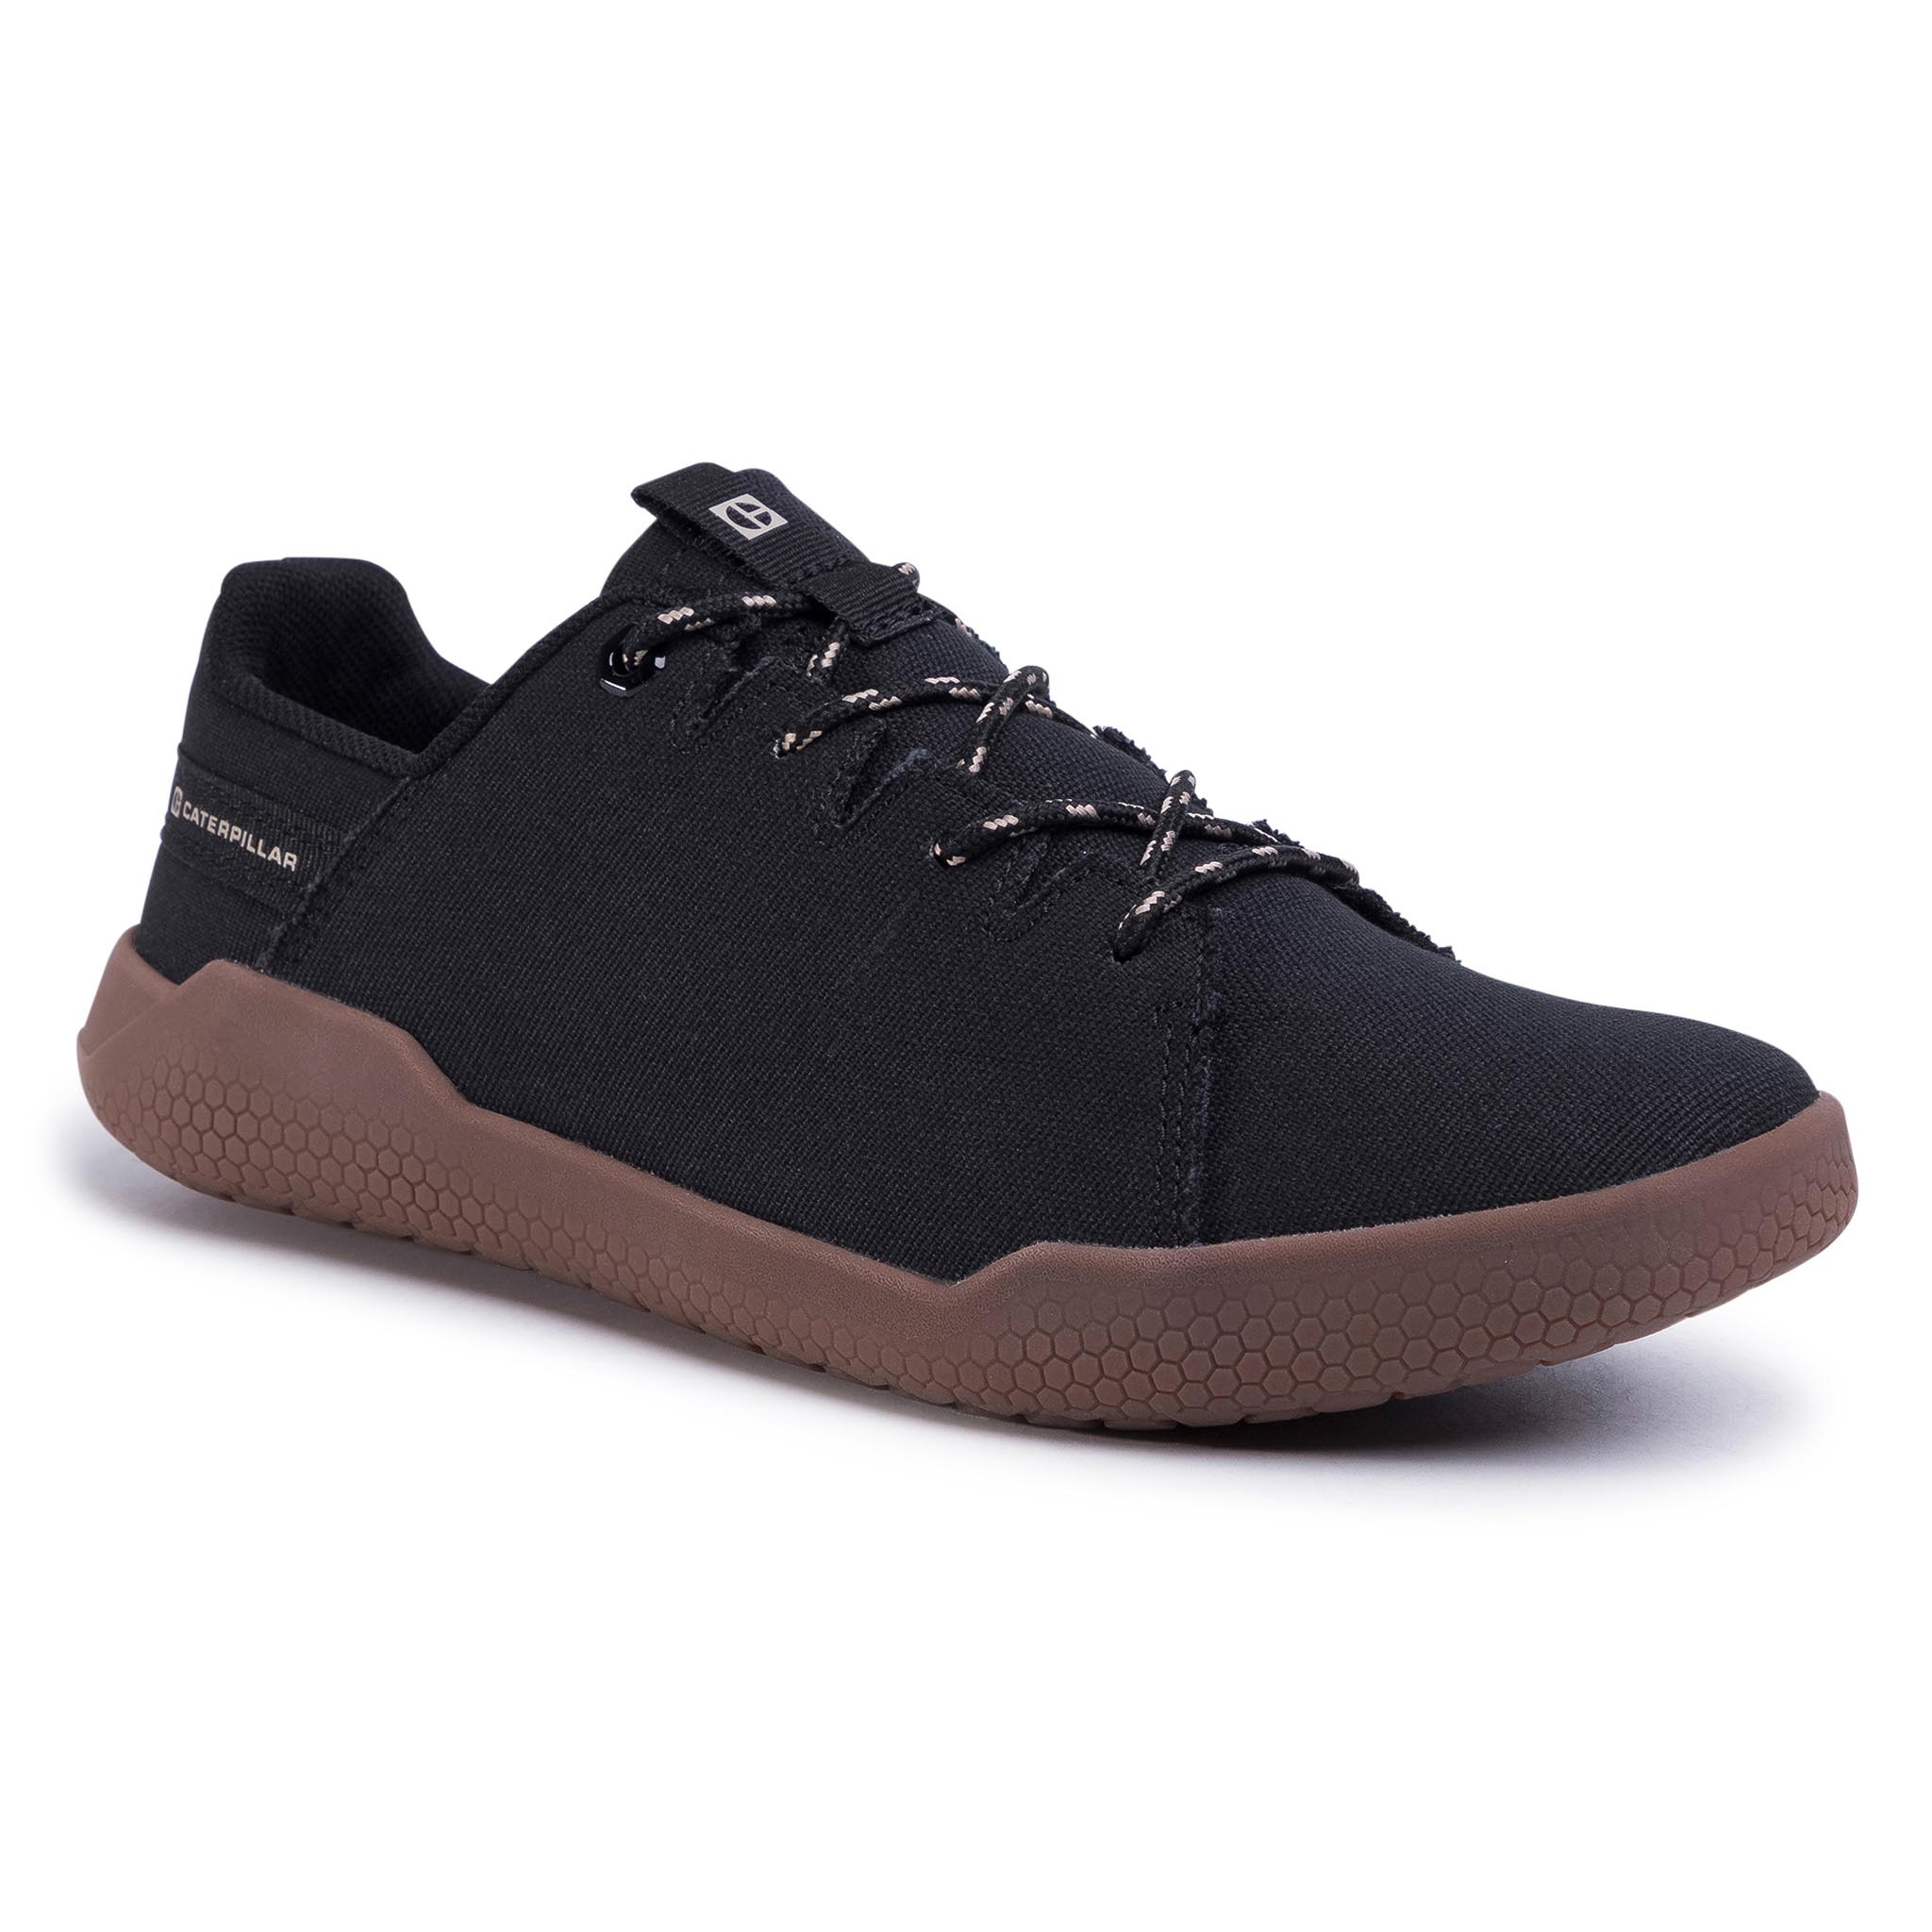 Sneakers CATERPILLAR - Hex X-Lace Canvas P724233 Black